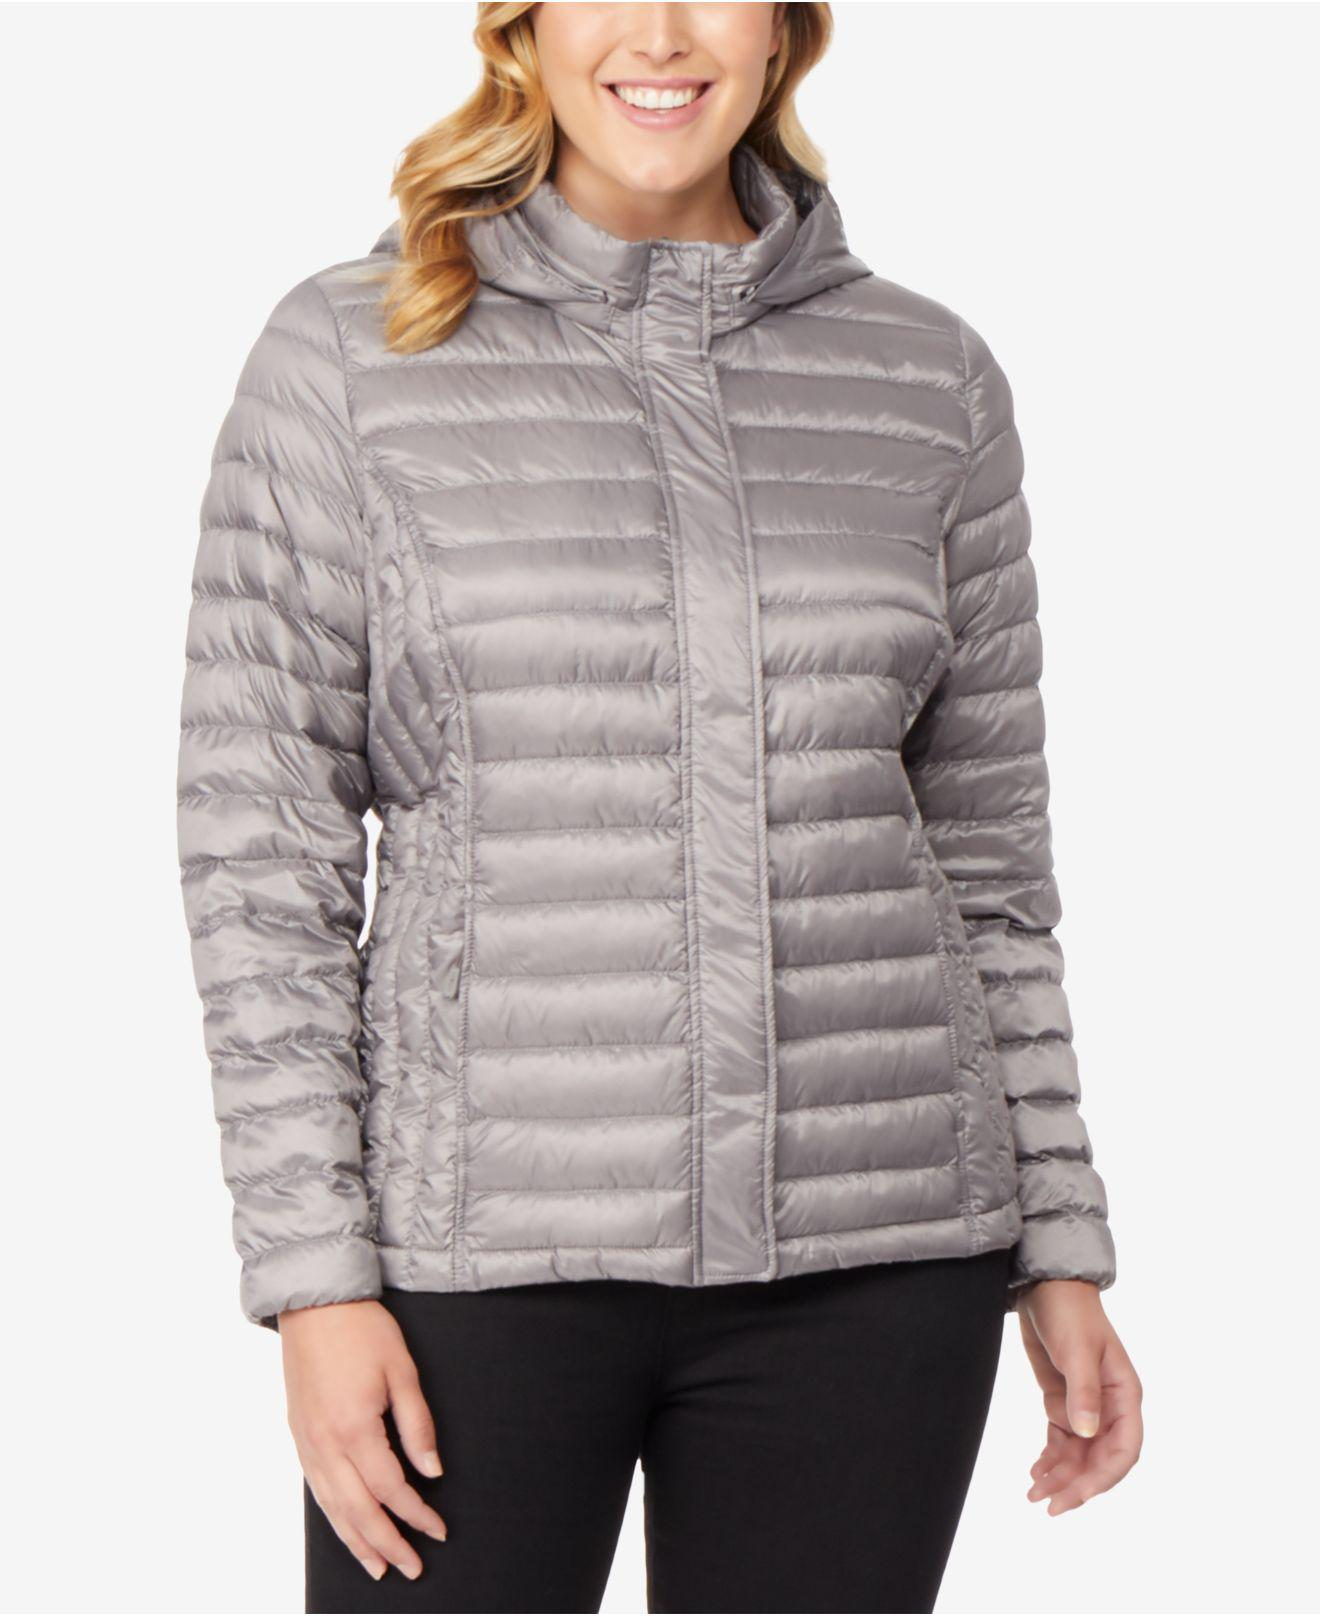 3cc986312ab Lyst - 32 Degrees Plus Size Hooded Puffer Coat in Gray - Save 23%